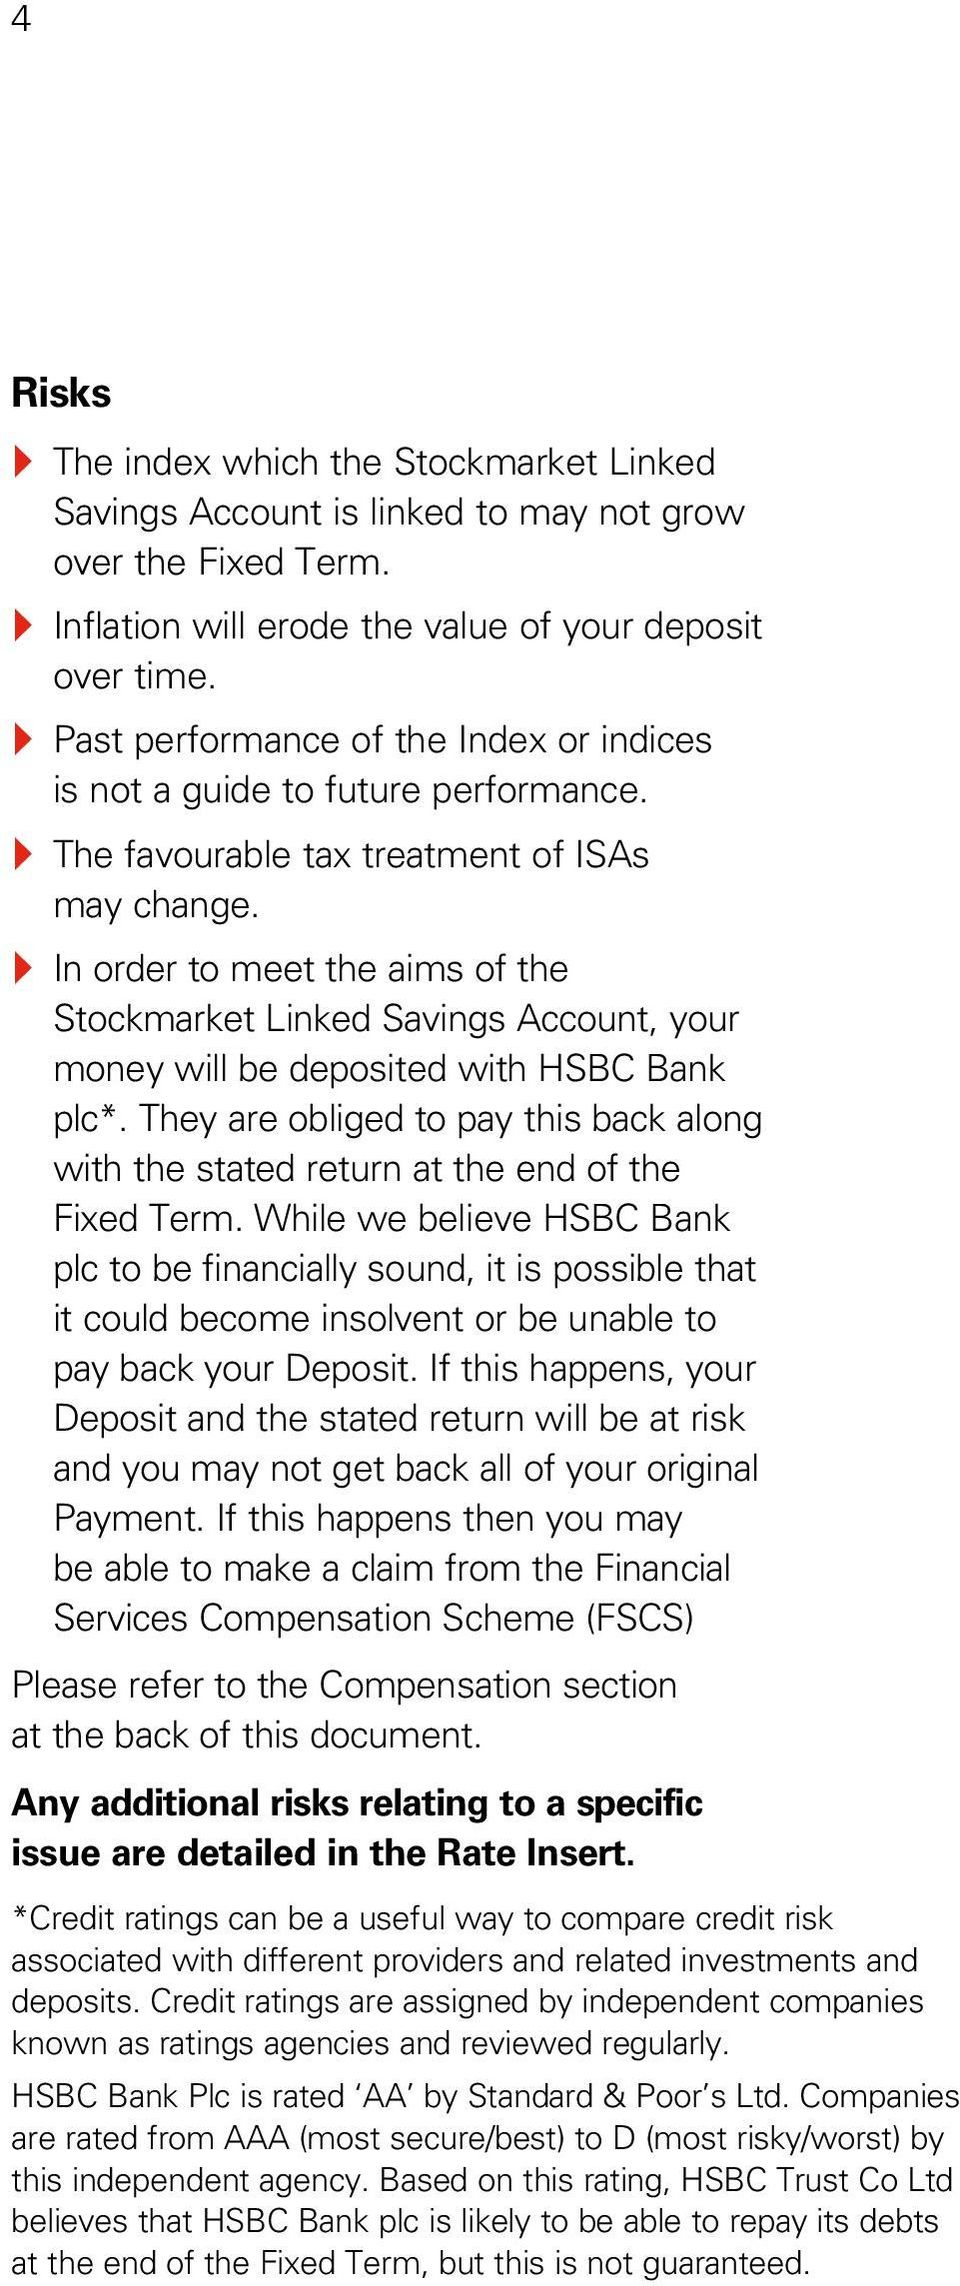 } In order to meet the aims of the Stockmarket Linked Savings Account, your money will be deposited with HSBC Bank plc*.